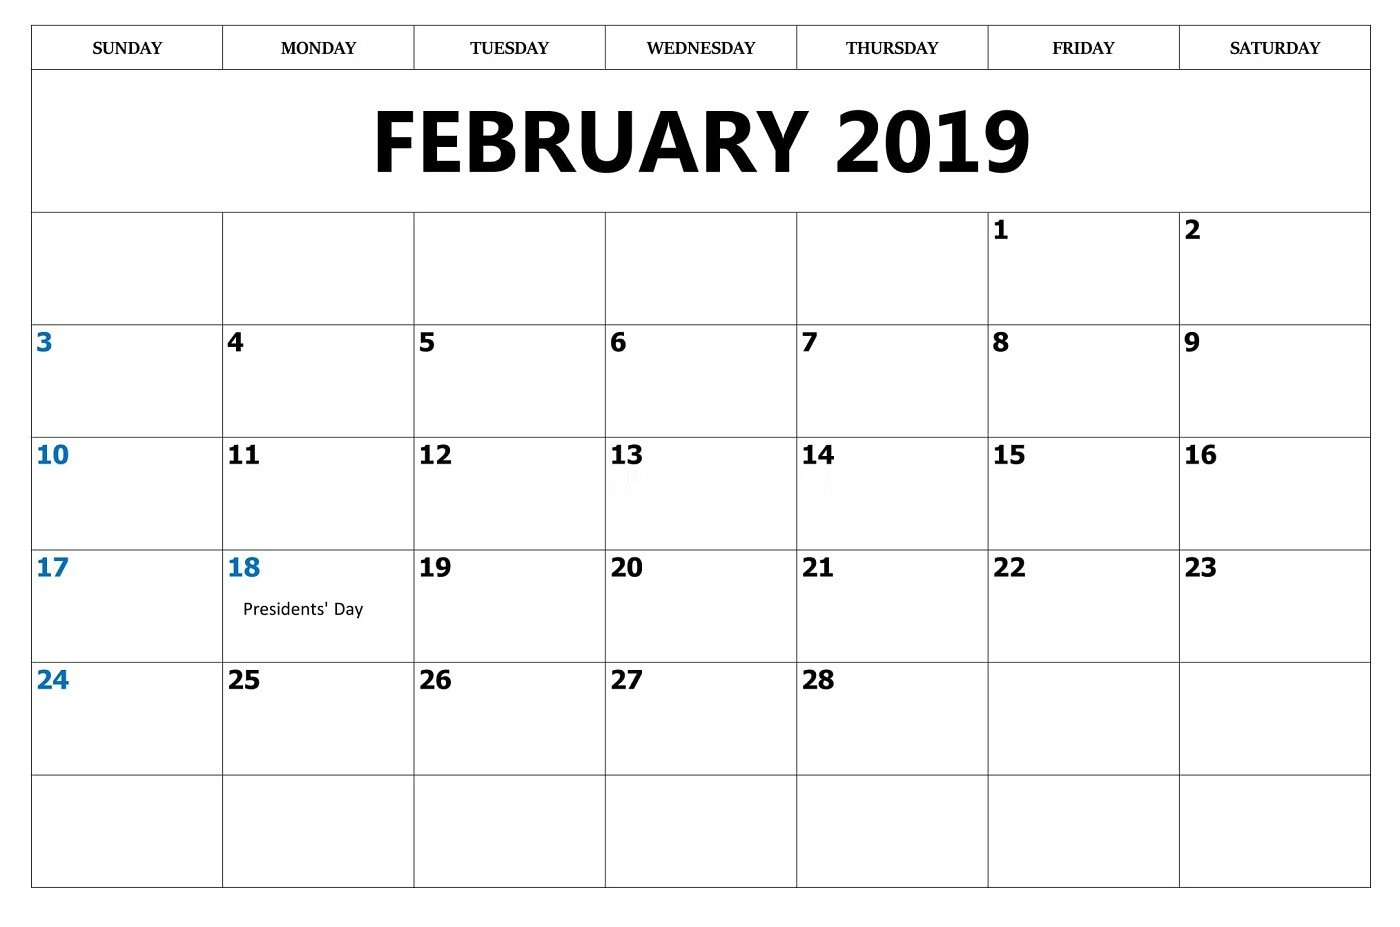 image relating to Calendar February Printable named Calendar February 2019 Template - Down load No cost Printable